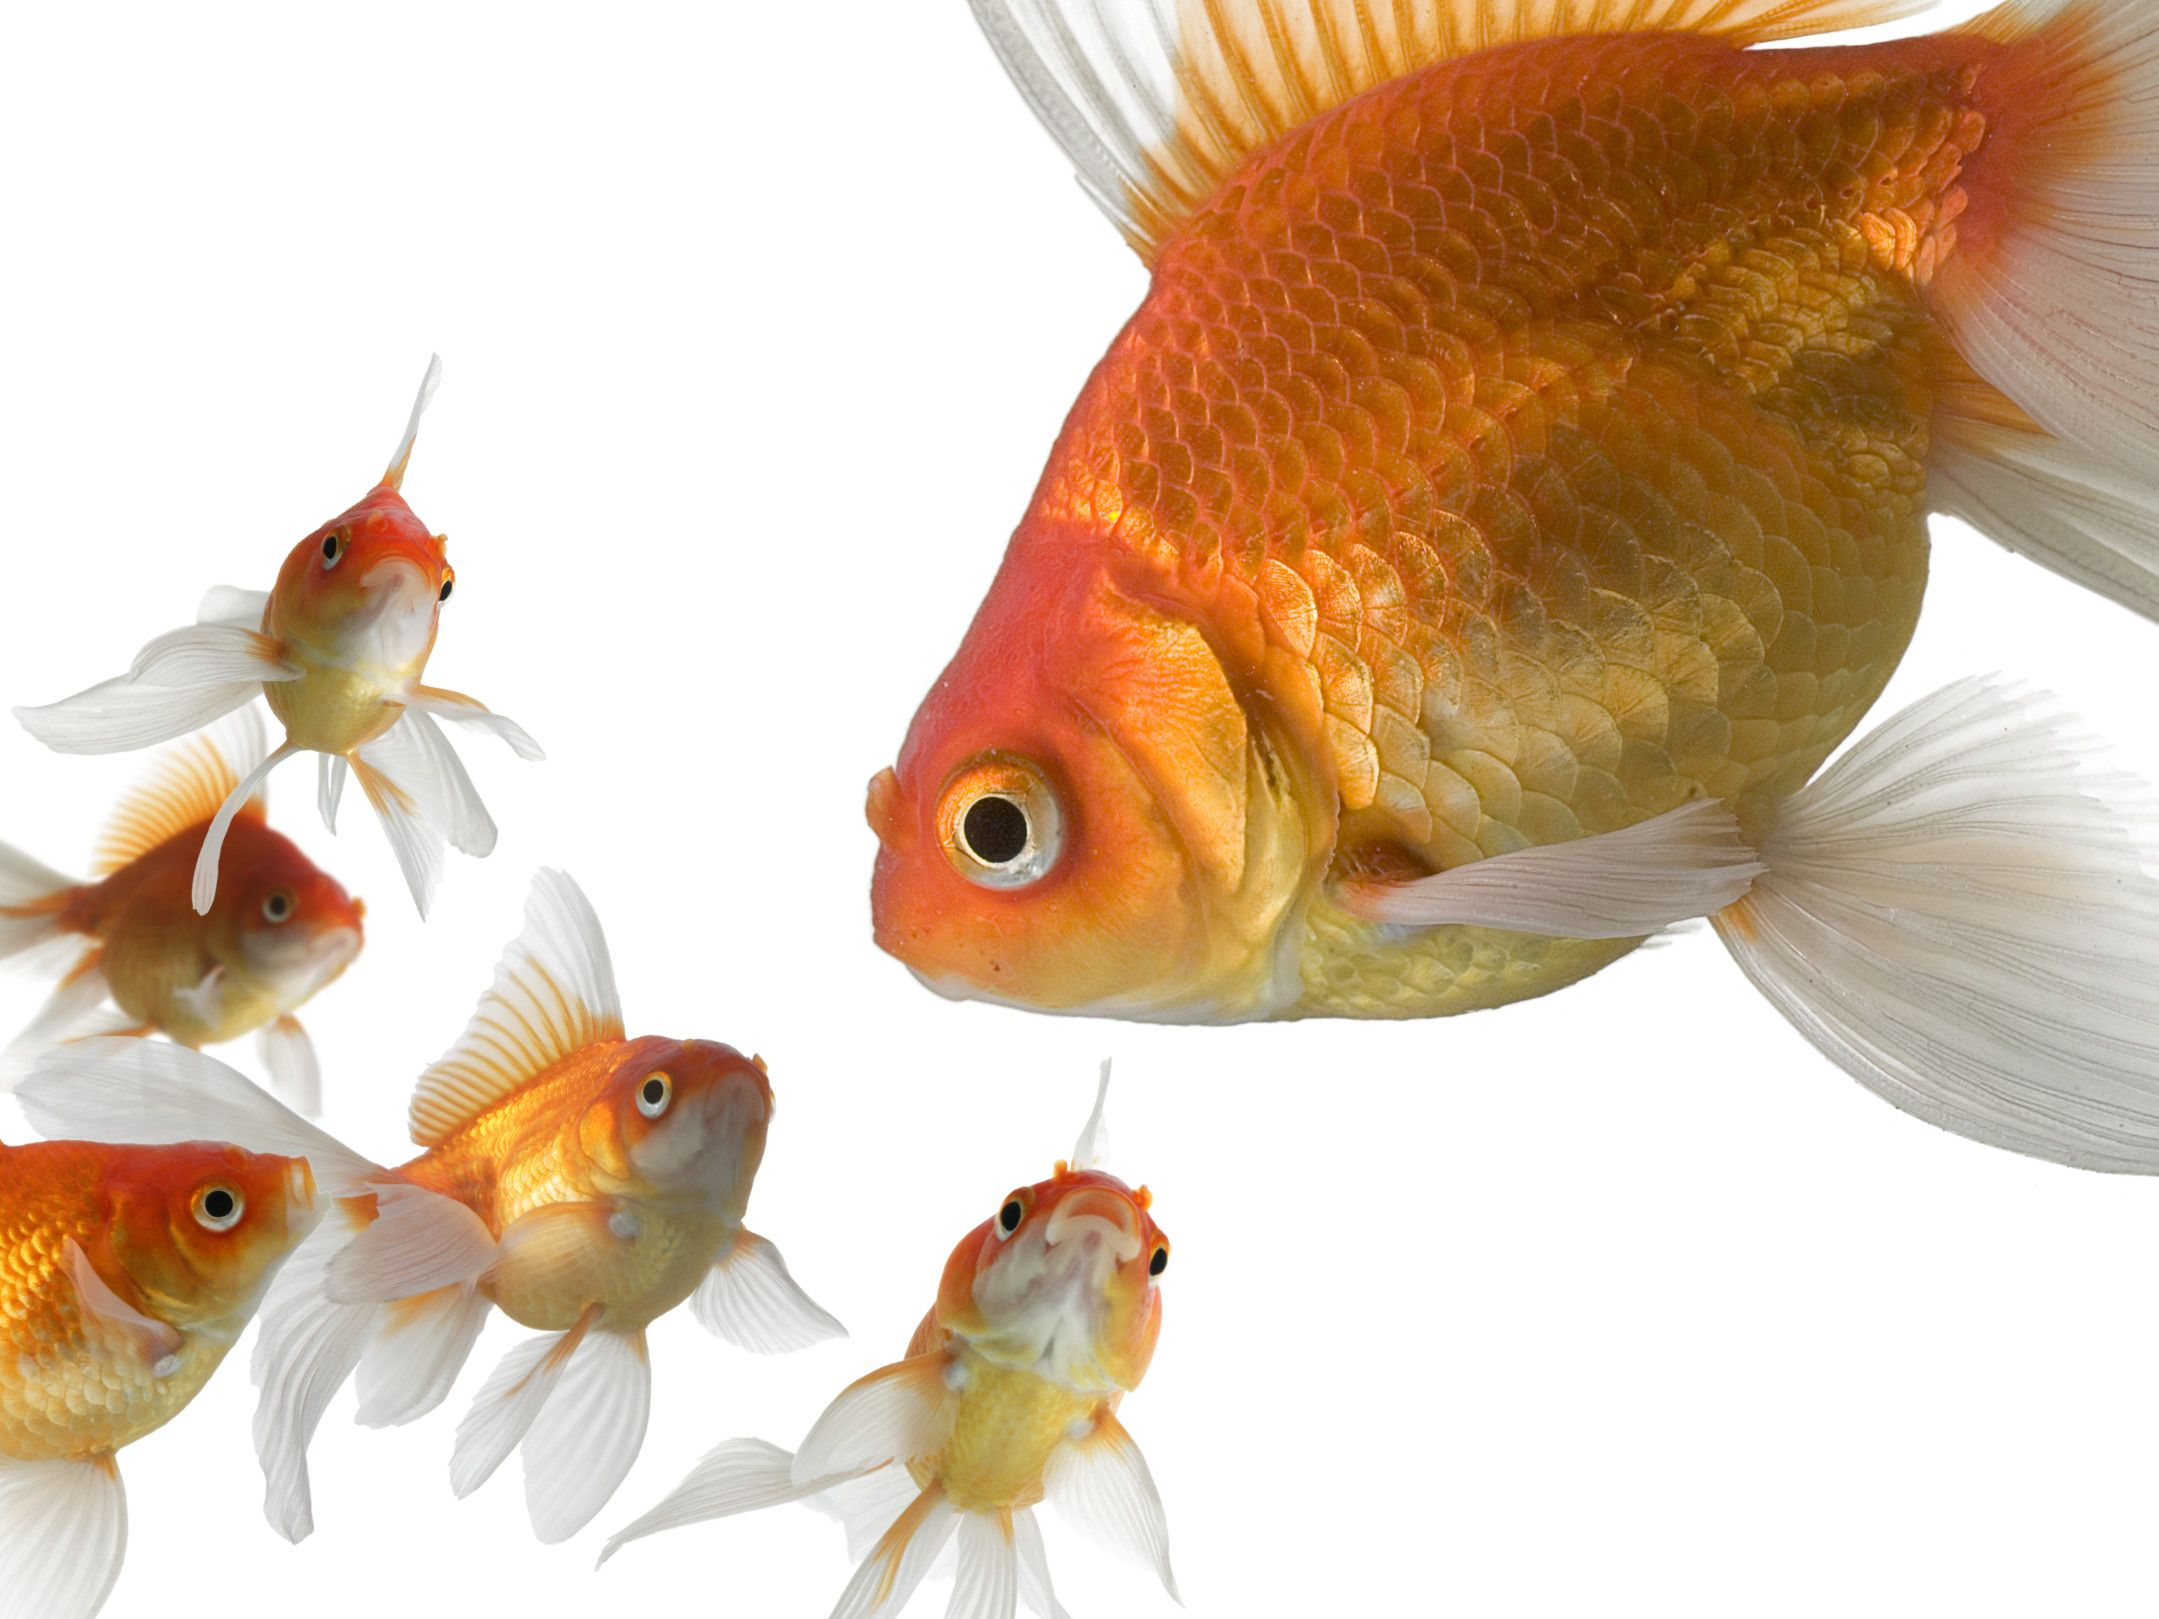 Freshwater aquarium fish exporters - Ornamental Fish Industry Is Exporting Freshwater Aquarium Fish From Sri Lankan Ornamental Fish Market